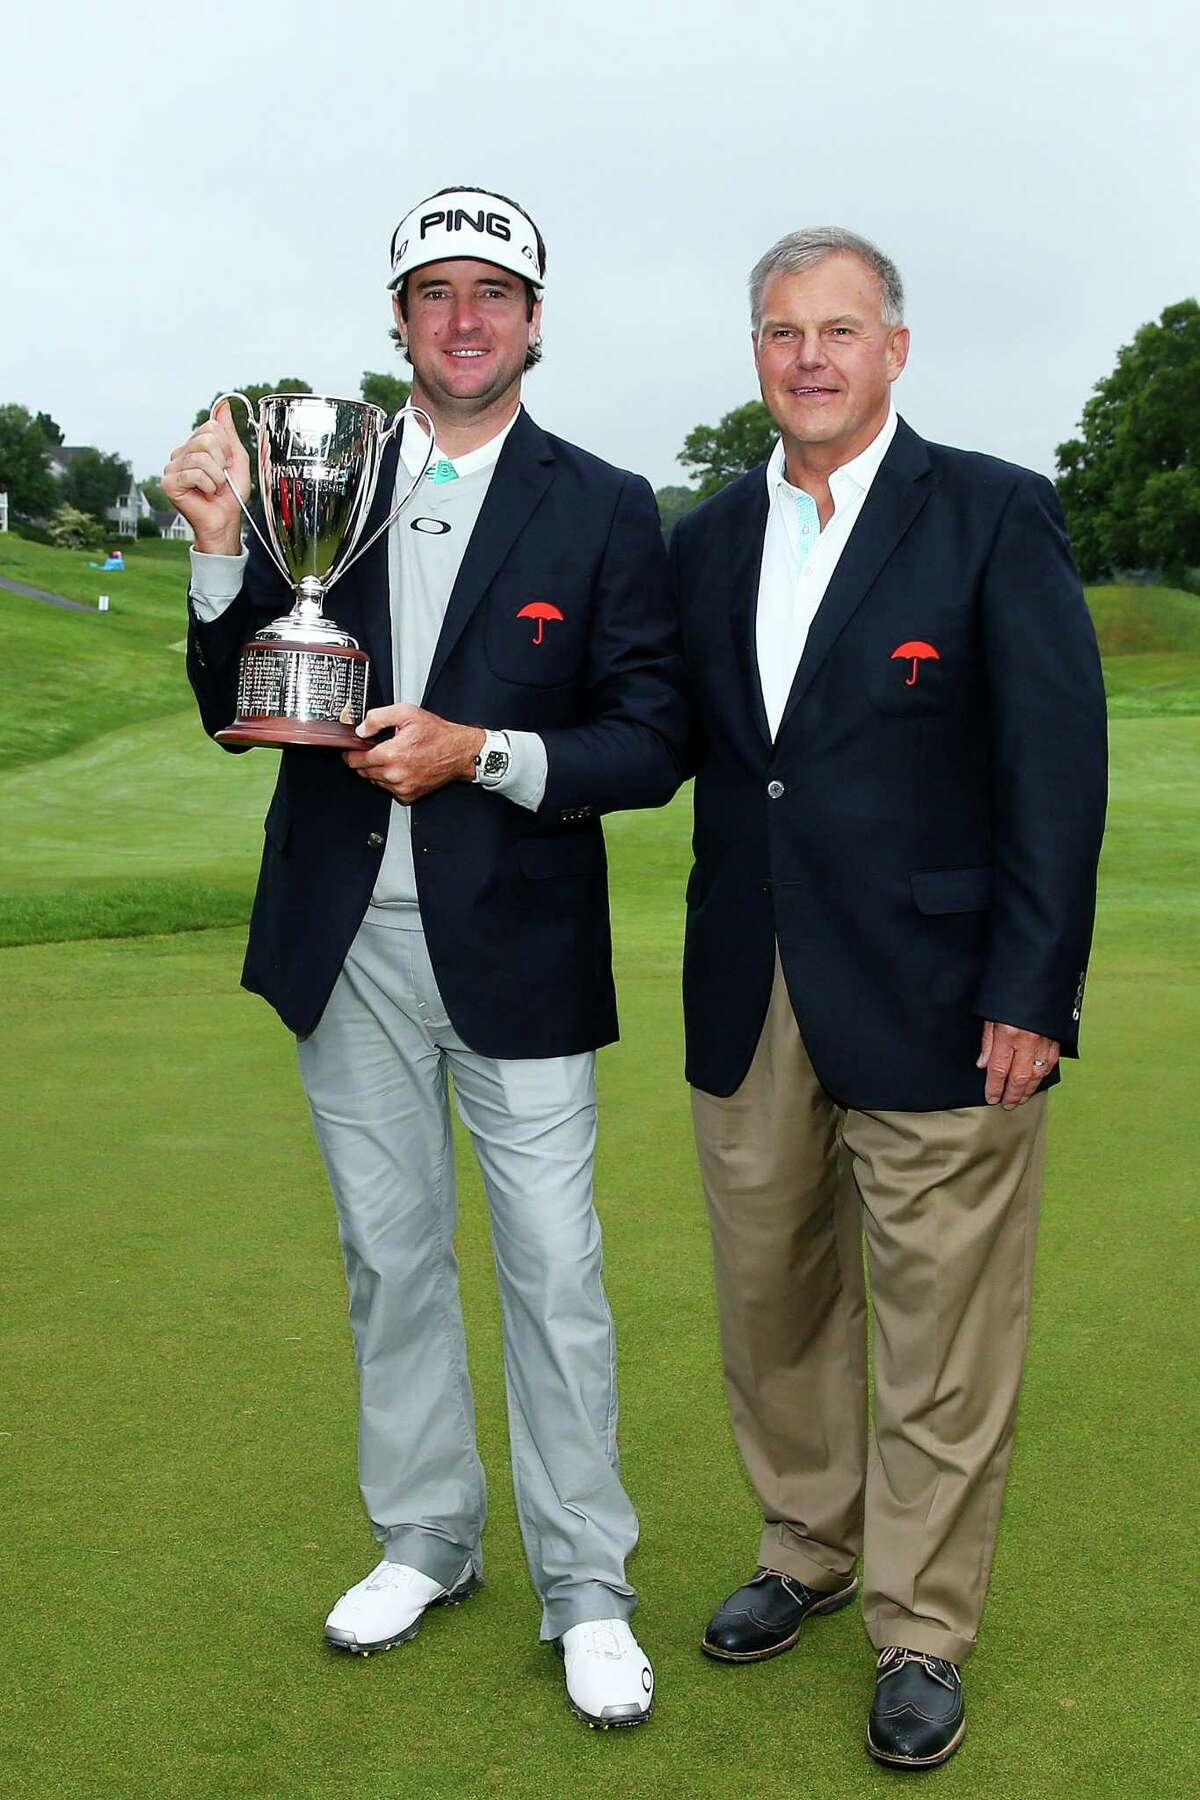 CROMWELL, CT - JUNE 28: Bubba Watson and Travelers executive Andy Bessette after the final round of the Travelers Championship at TPC River Highlands on June 28, 2015 in Cromwell, Connecticut. (Photo by Jim Rogash/Getty Images)